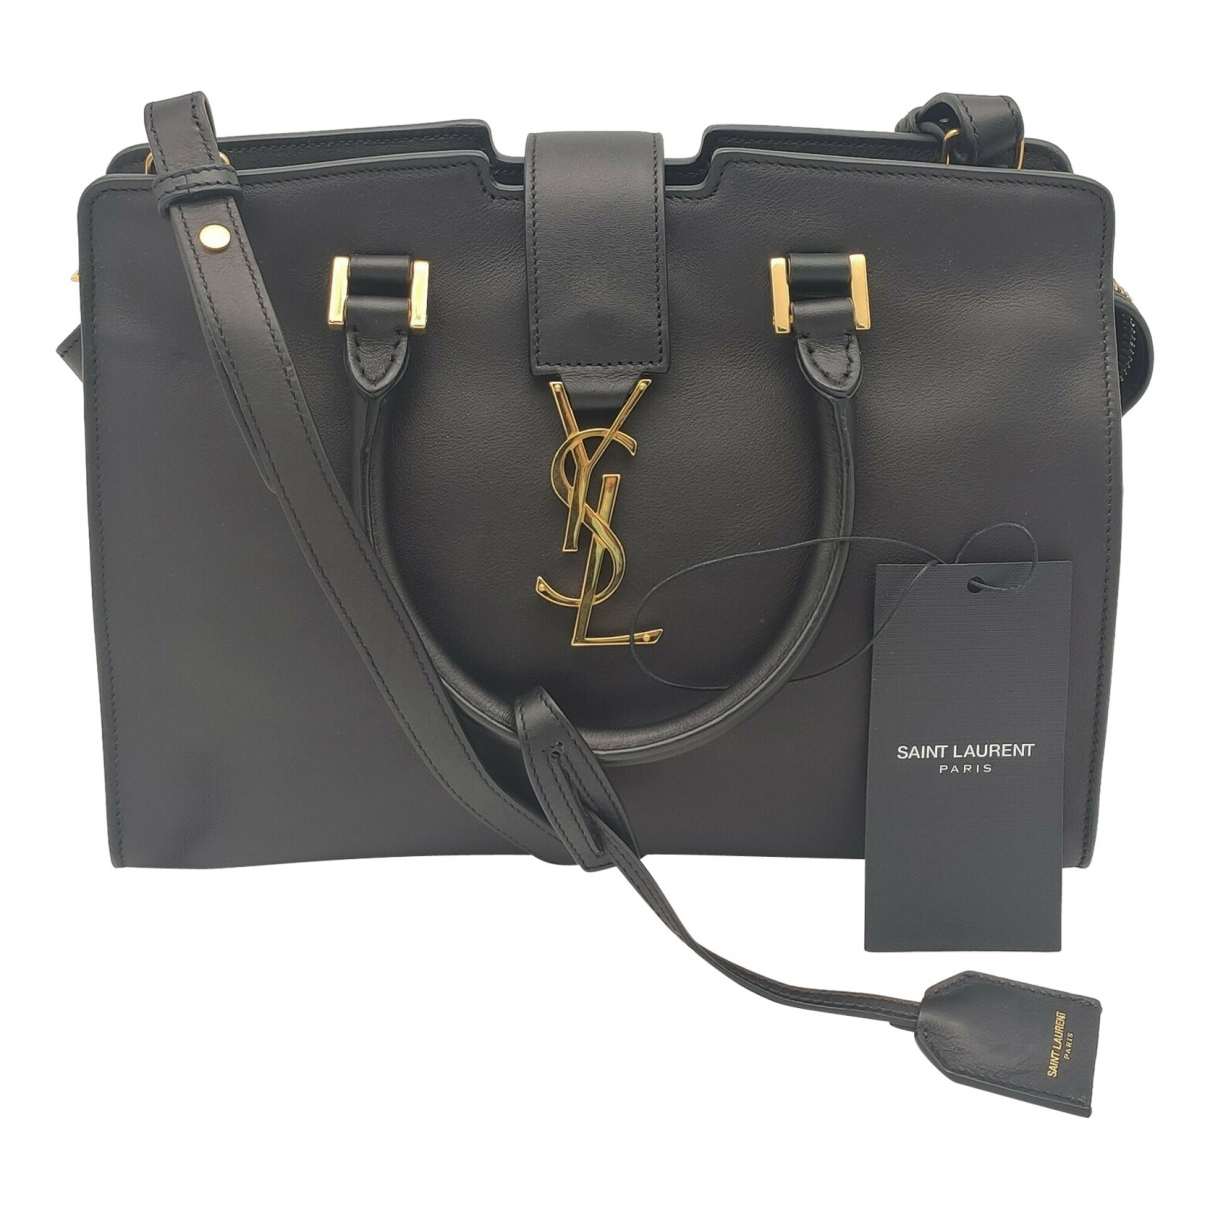 Saint Laurent Monogram Cabas Handtasche in  Schwarz Leder